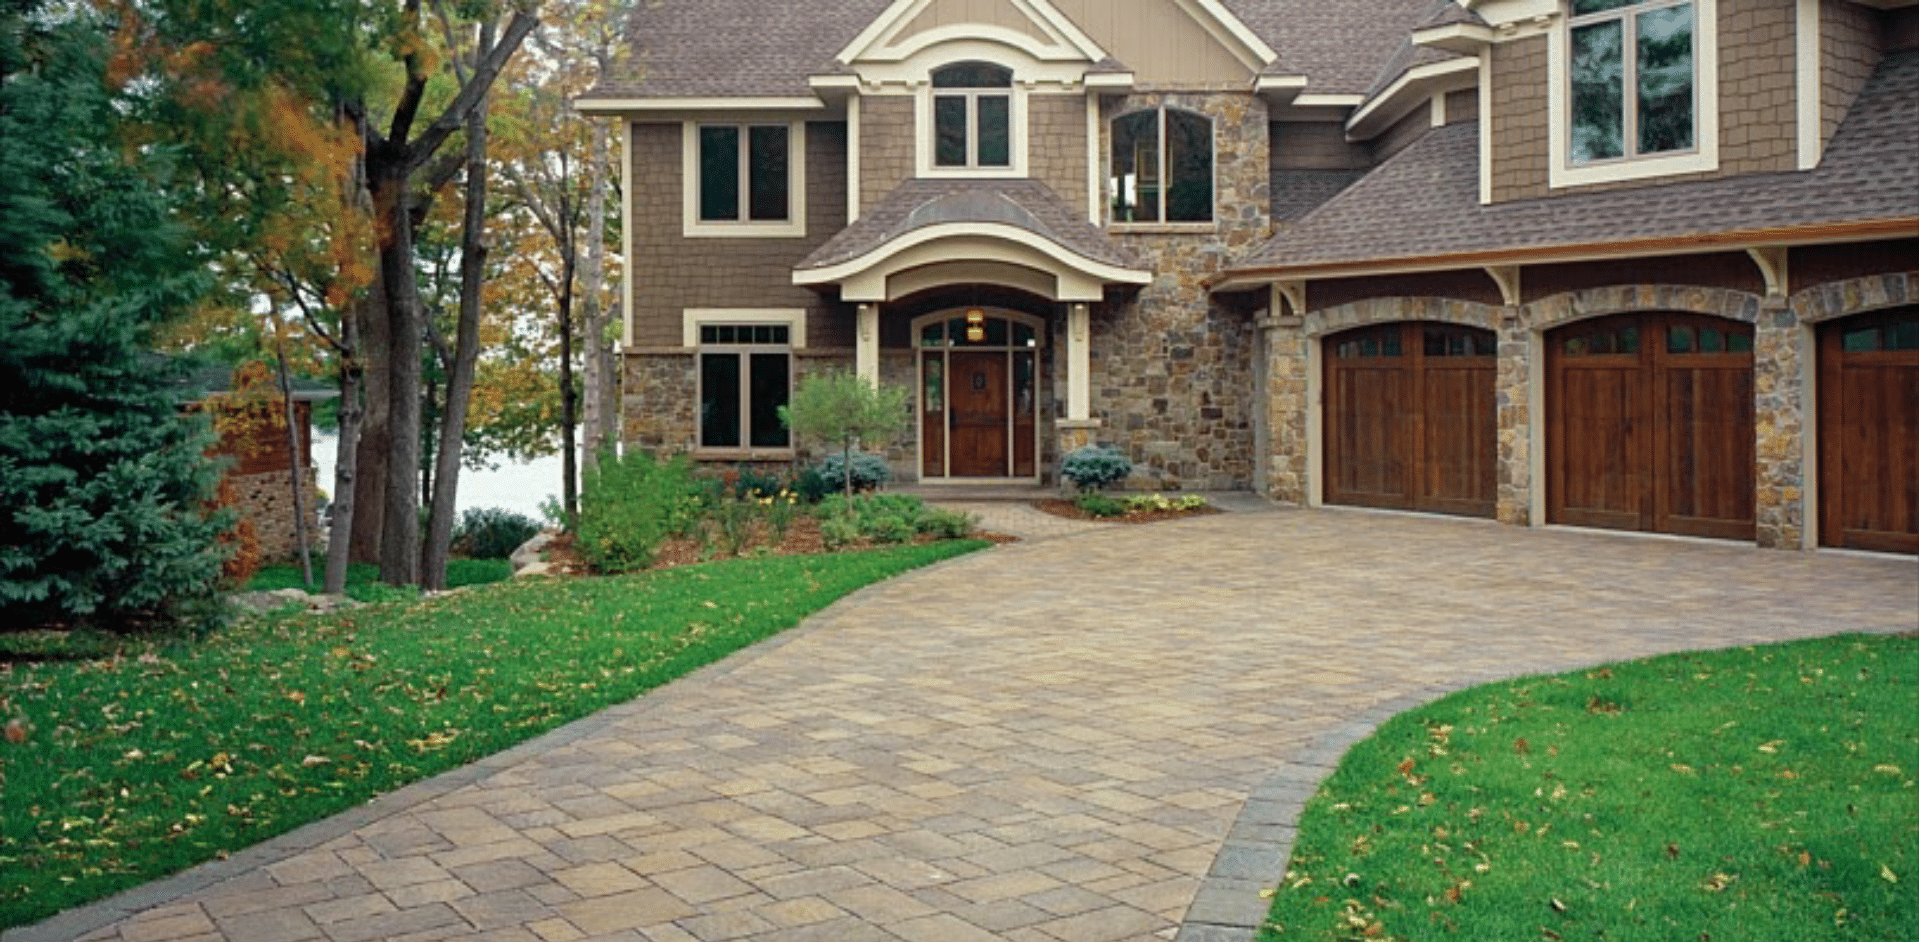 Brick Paver Driveways designed and built by Seasonal Landscape Solutions